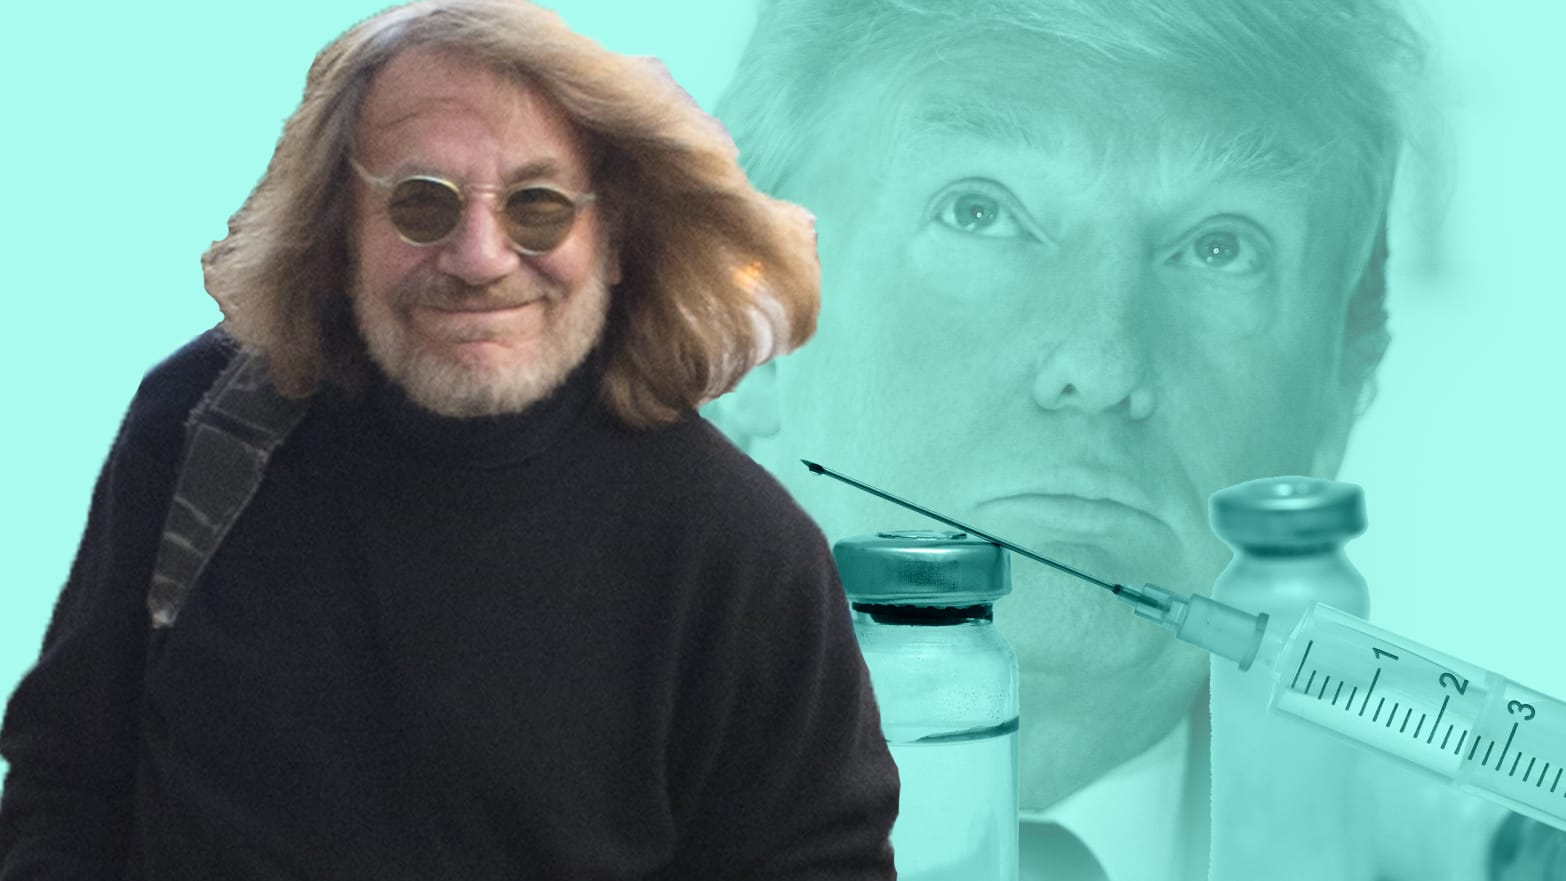 Lawsuits: Trump's Doctor 'Overmedicated' Patients Who Died in His Care